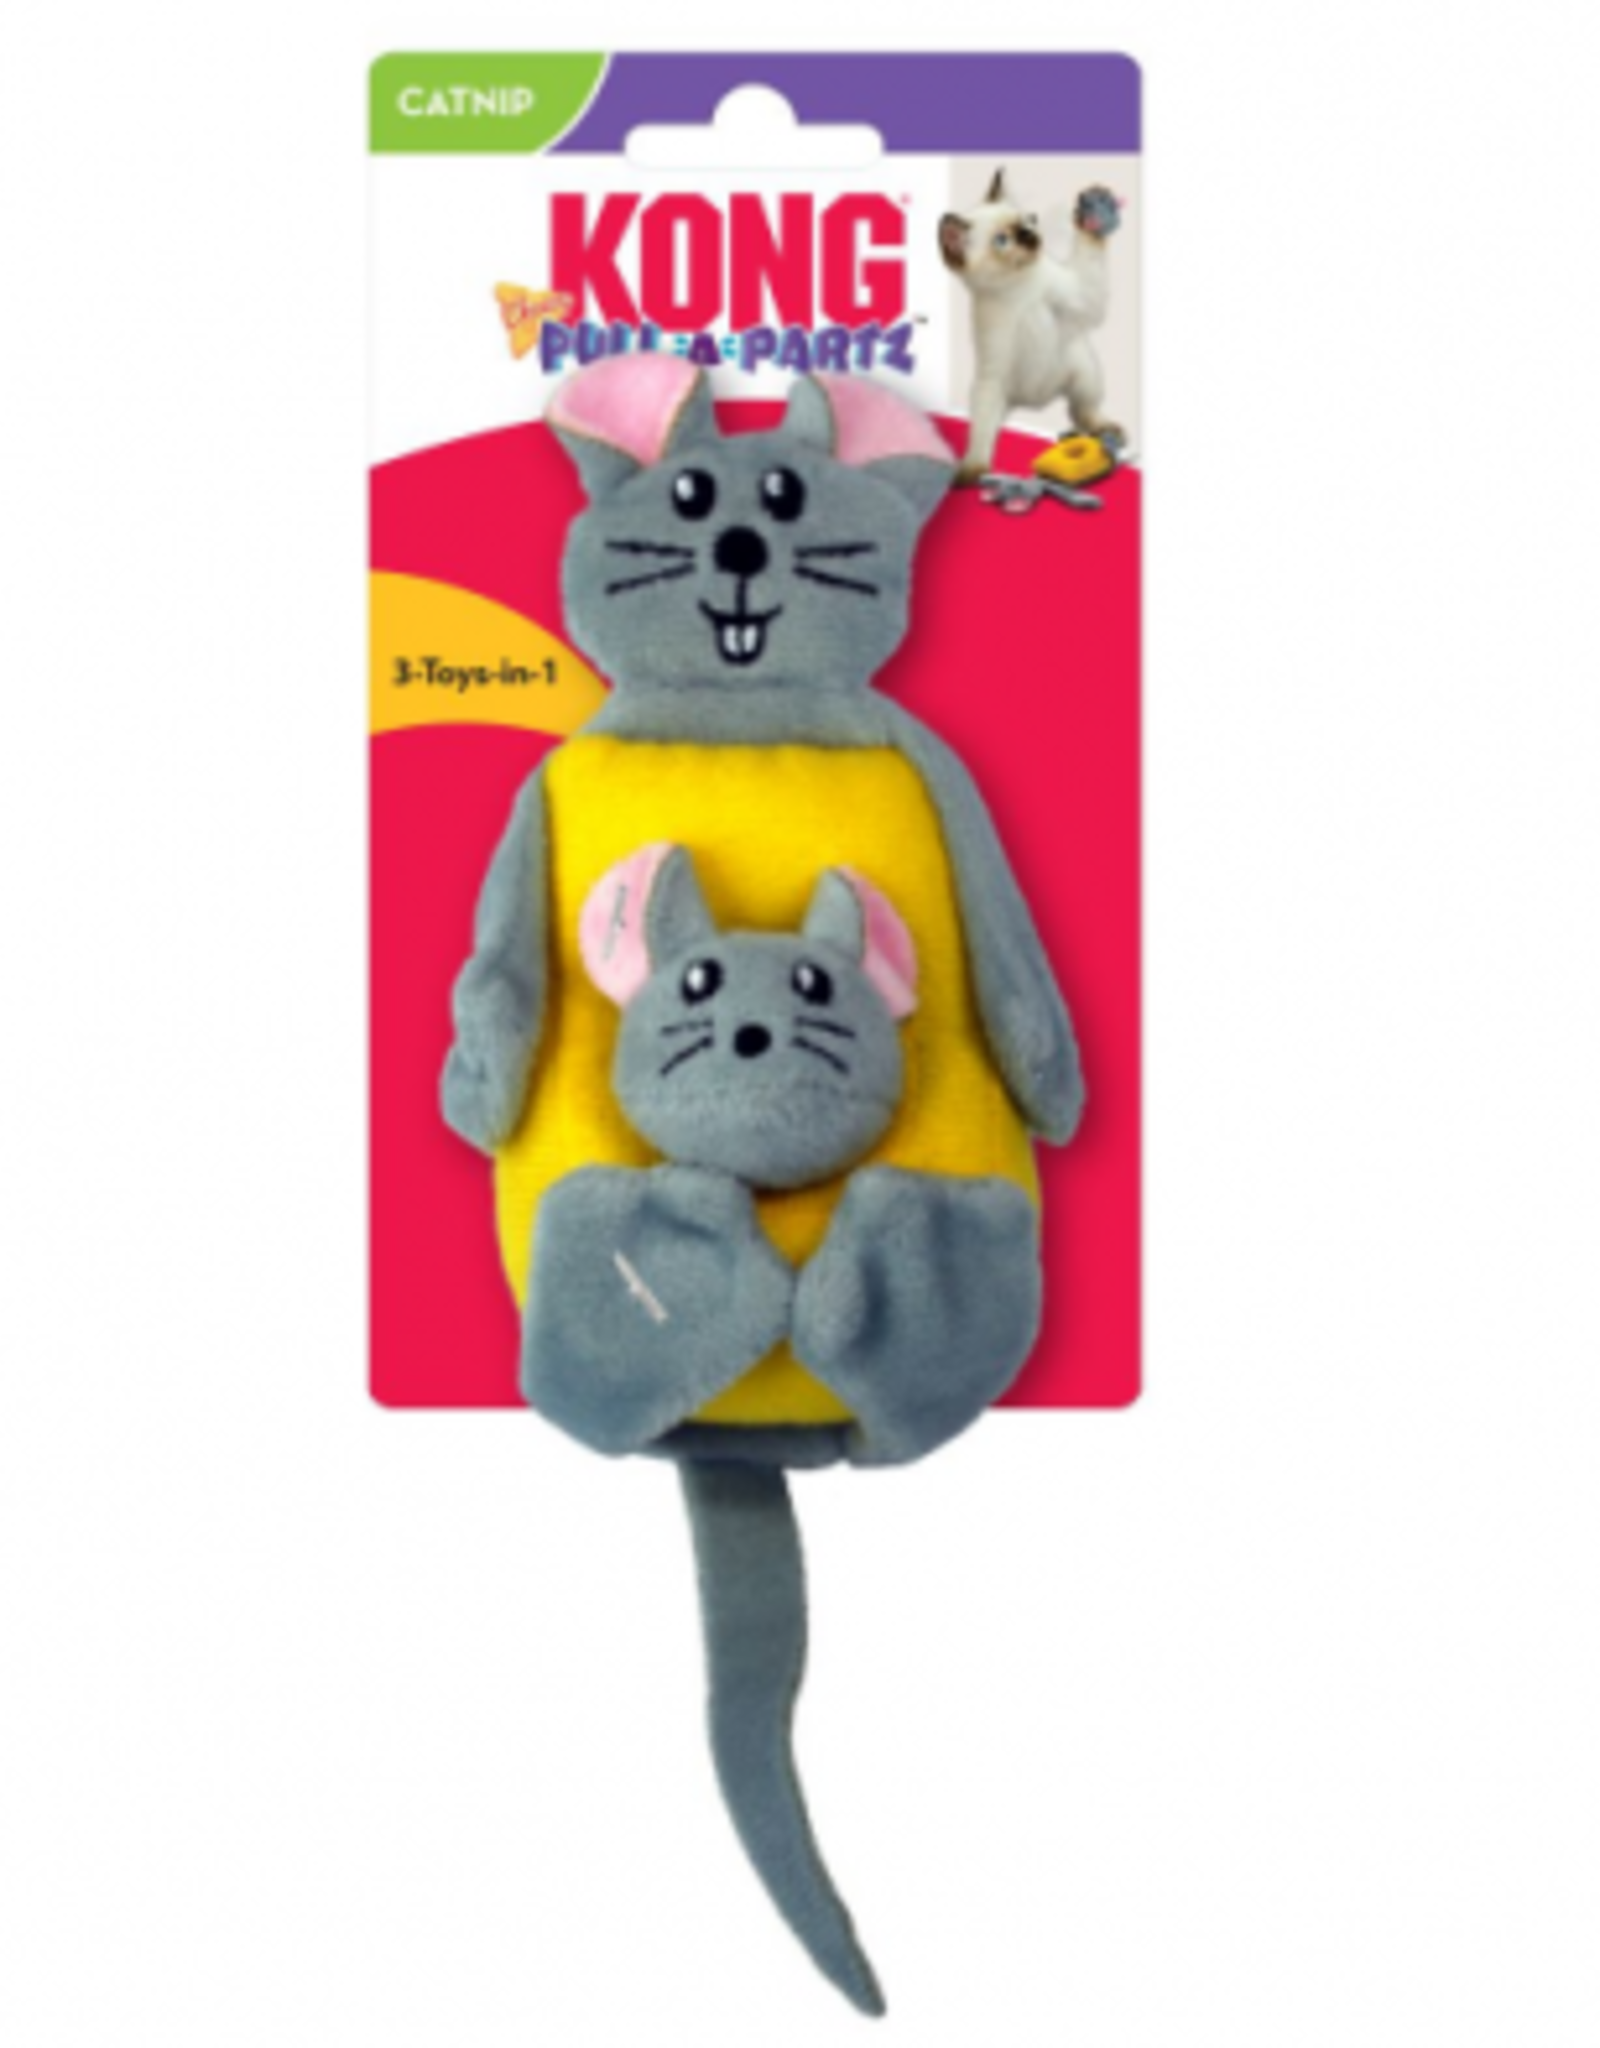 Kong Pull-a-part Cheezy